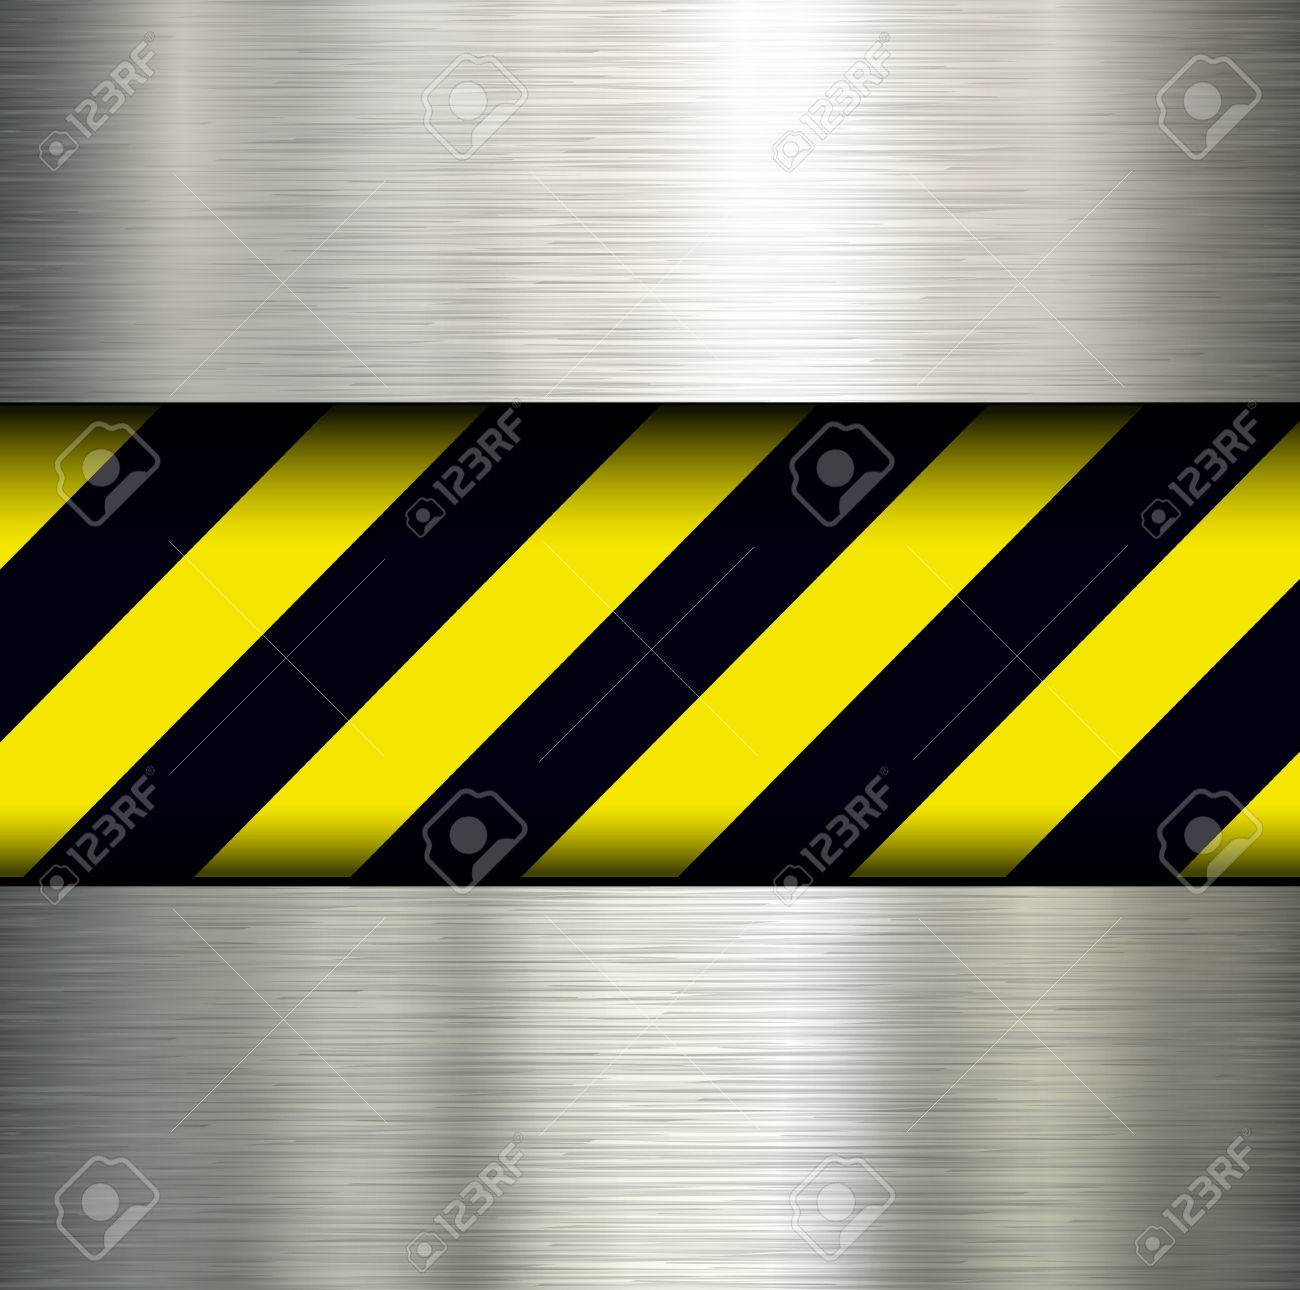 Metallic background with warning stripes, vector illustration. Stock Vector - 26160930